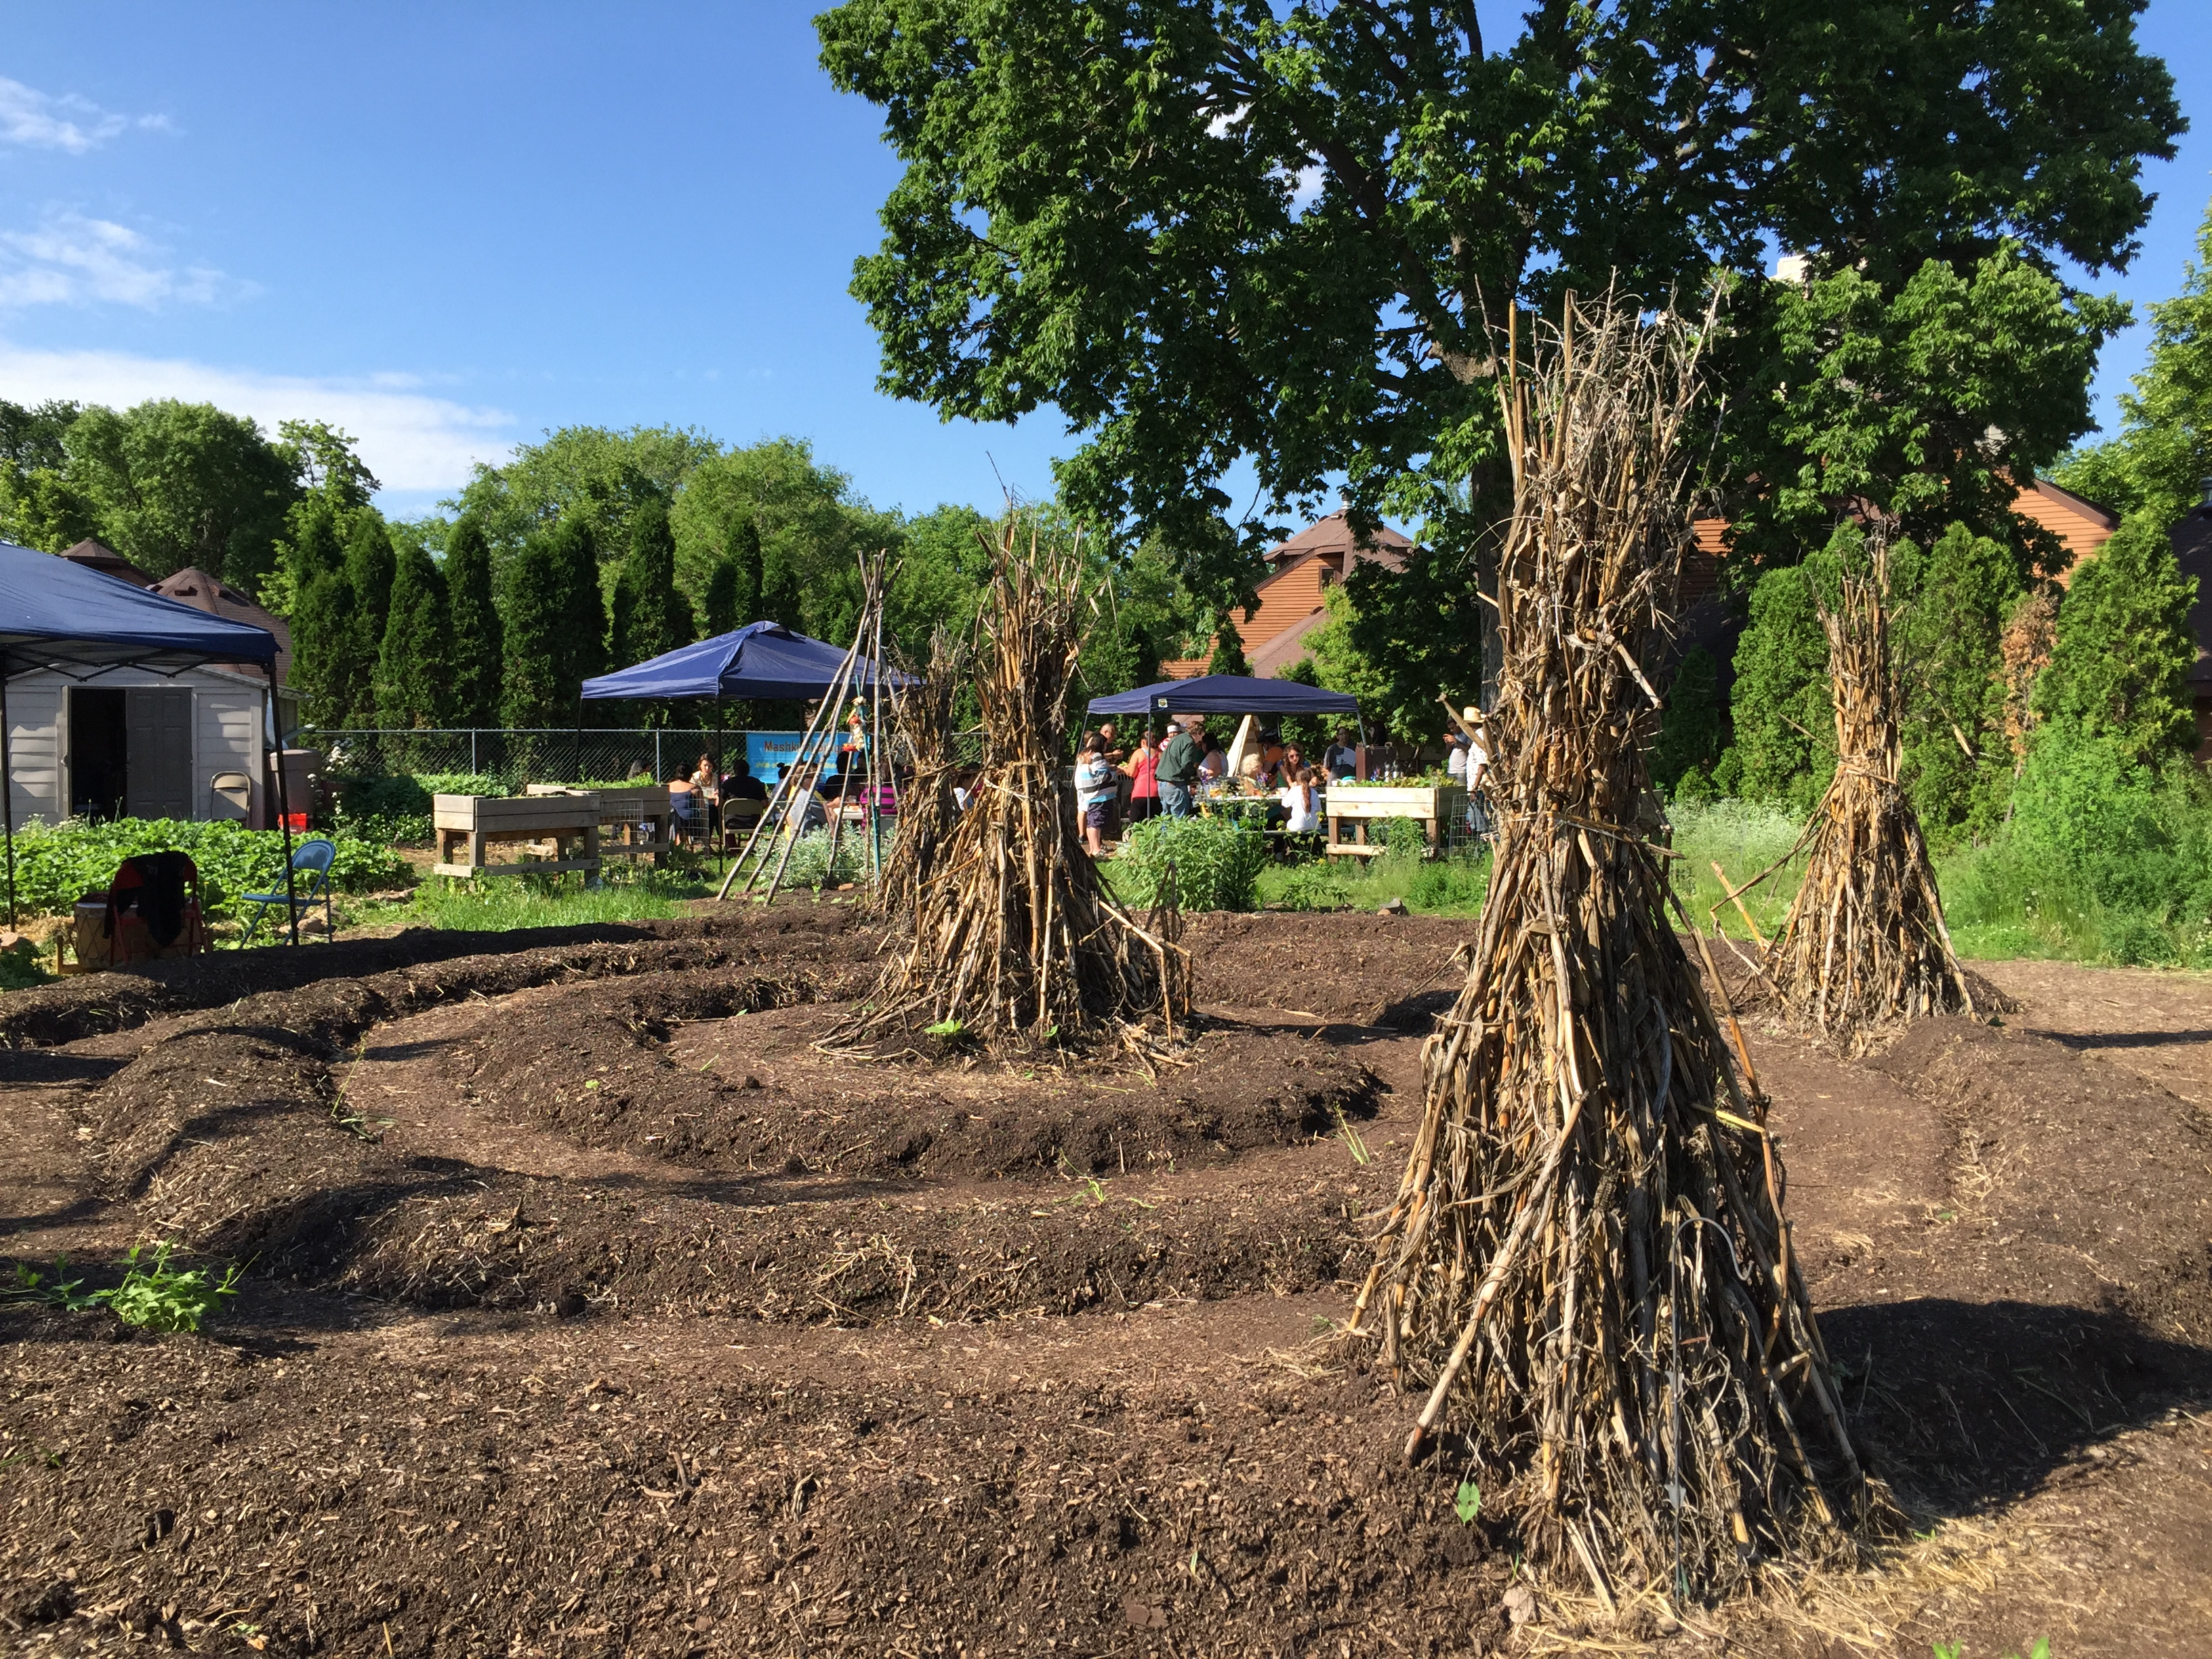 Caption: The central spiral at the Mishkiikii Gitigan in south Minneapolis., Credit: Melissa Townsend